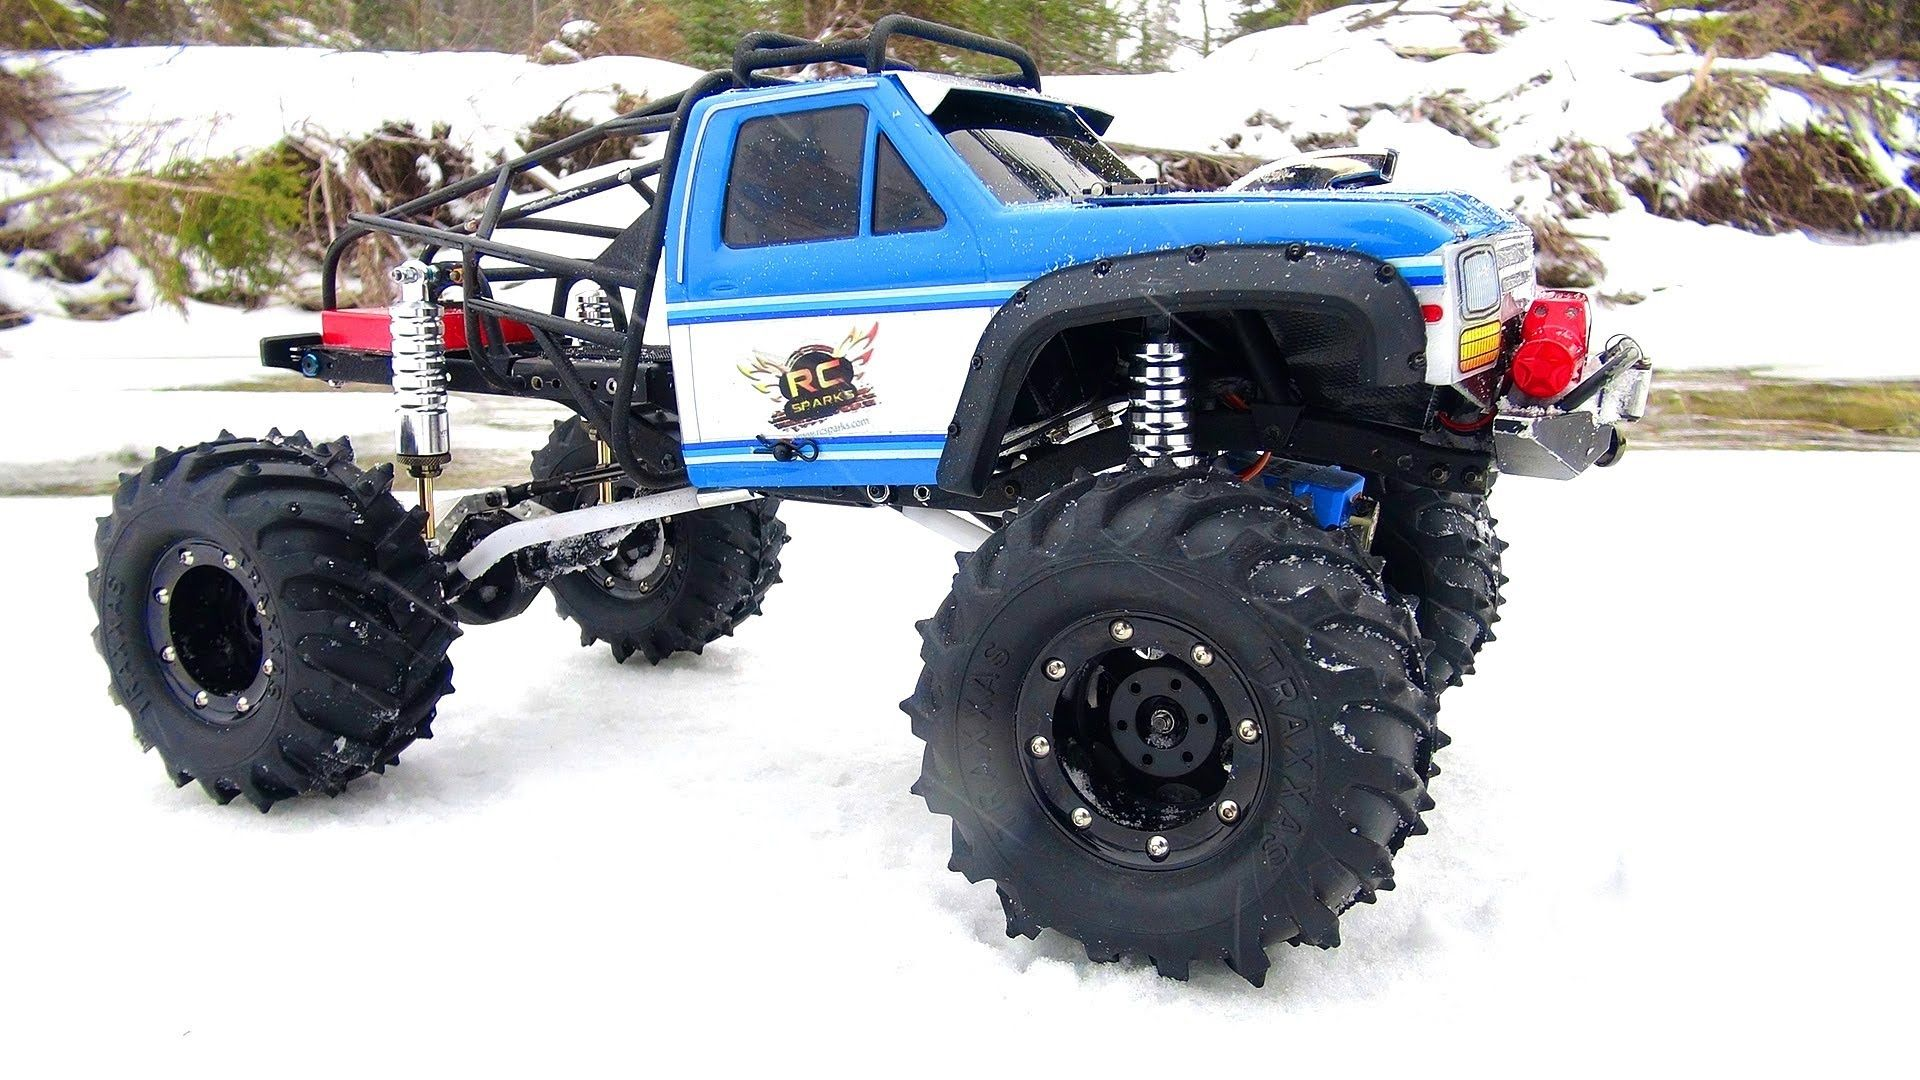 Altered Beast Deep Freeze Rc Vehicles Radio Control Rc Cars The Beast Frozen 4x4 Trail